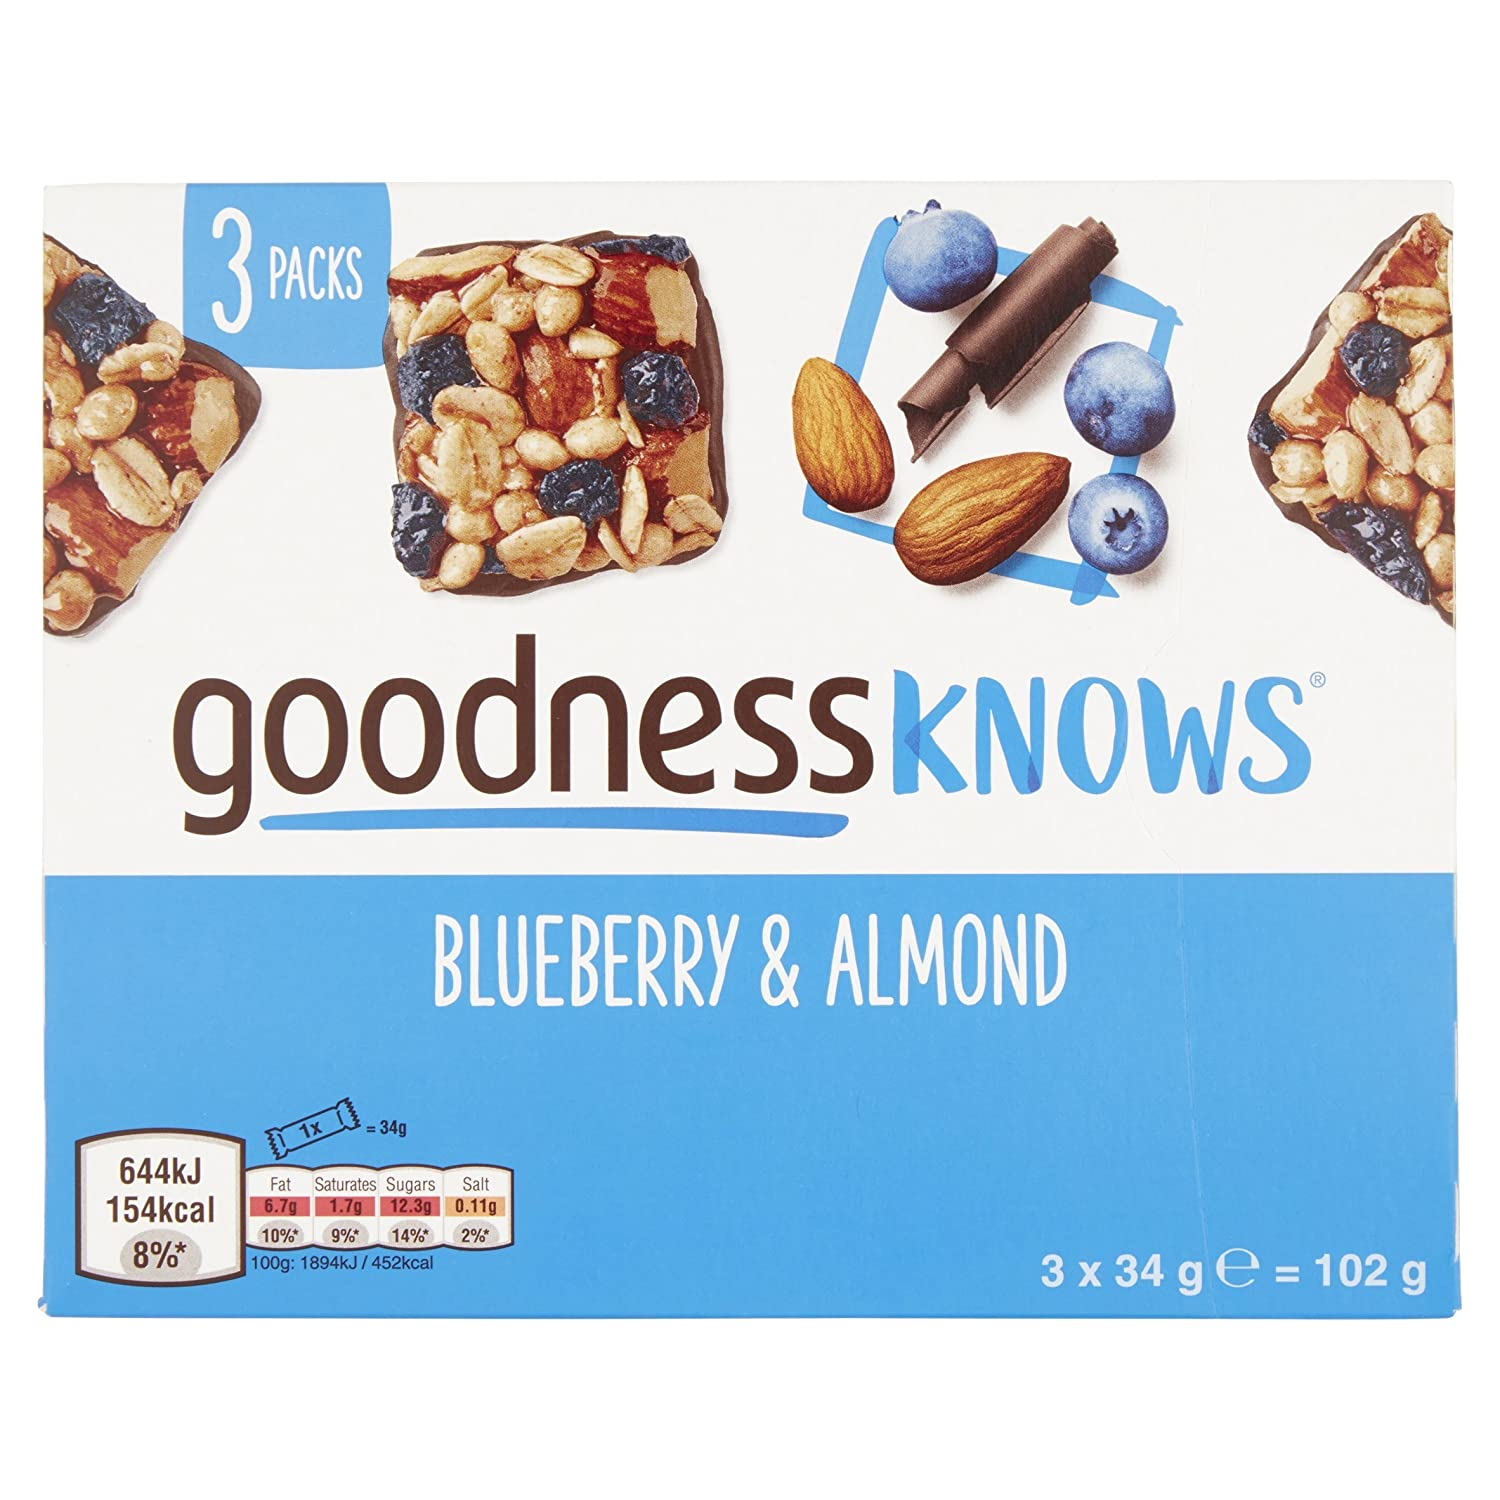 goodnessKNOWS Blueberry and Almond Multipack Snack, 102 g: Amazon.co.uk:  Prime Pantry